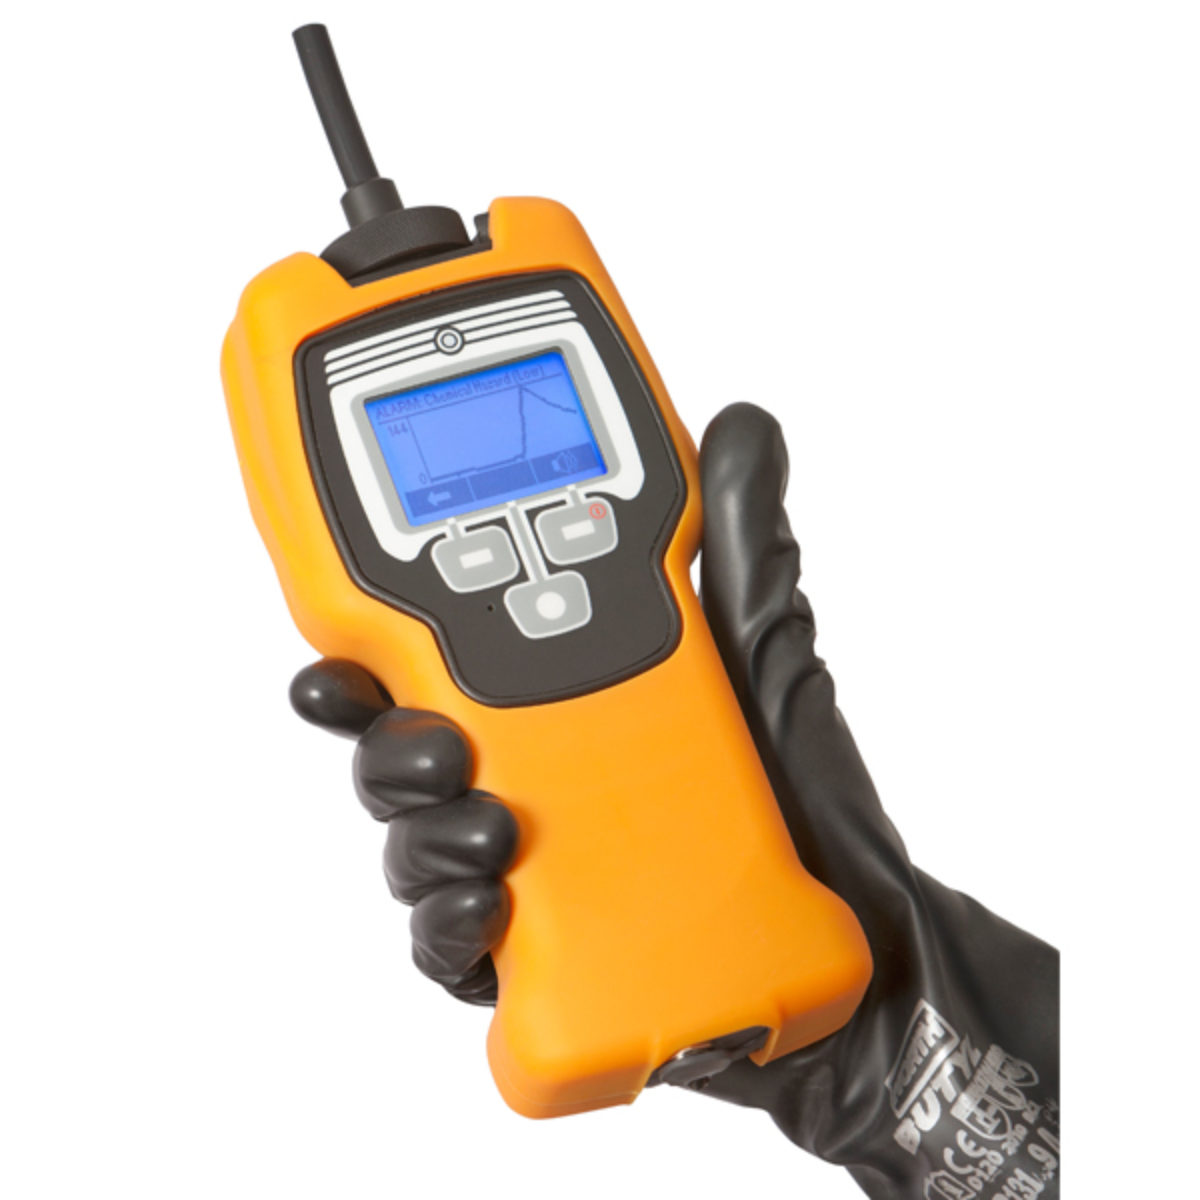 Chempro 100i IMS - Improved Chemical Detector from Environics - AFC  International